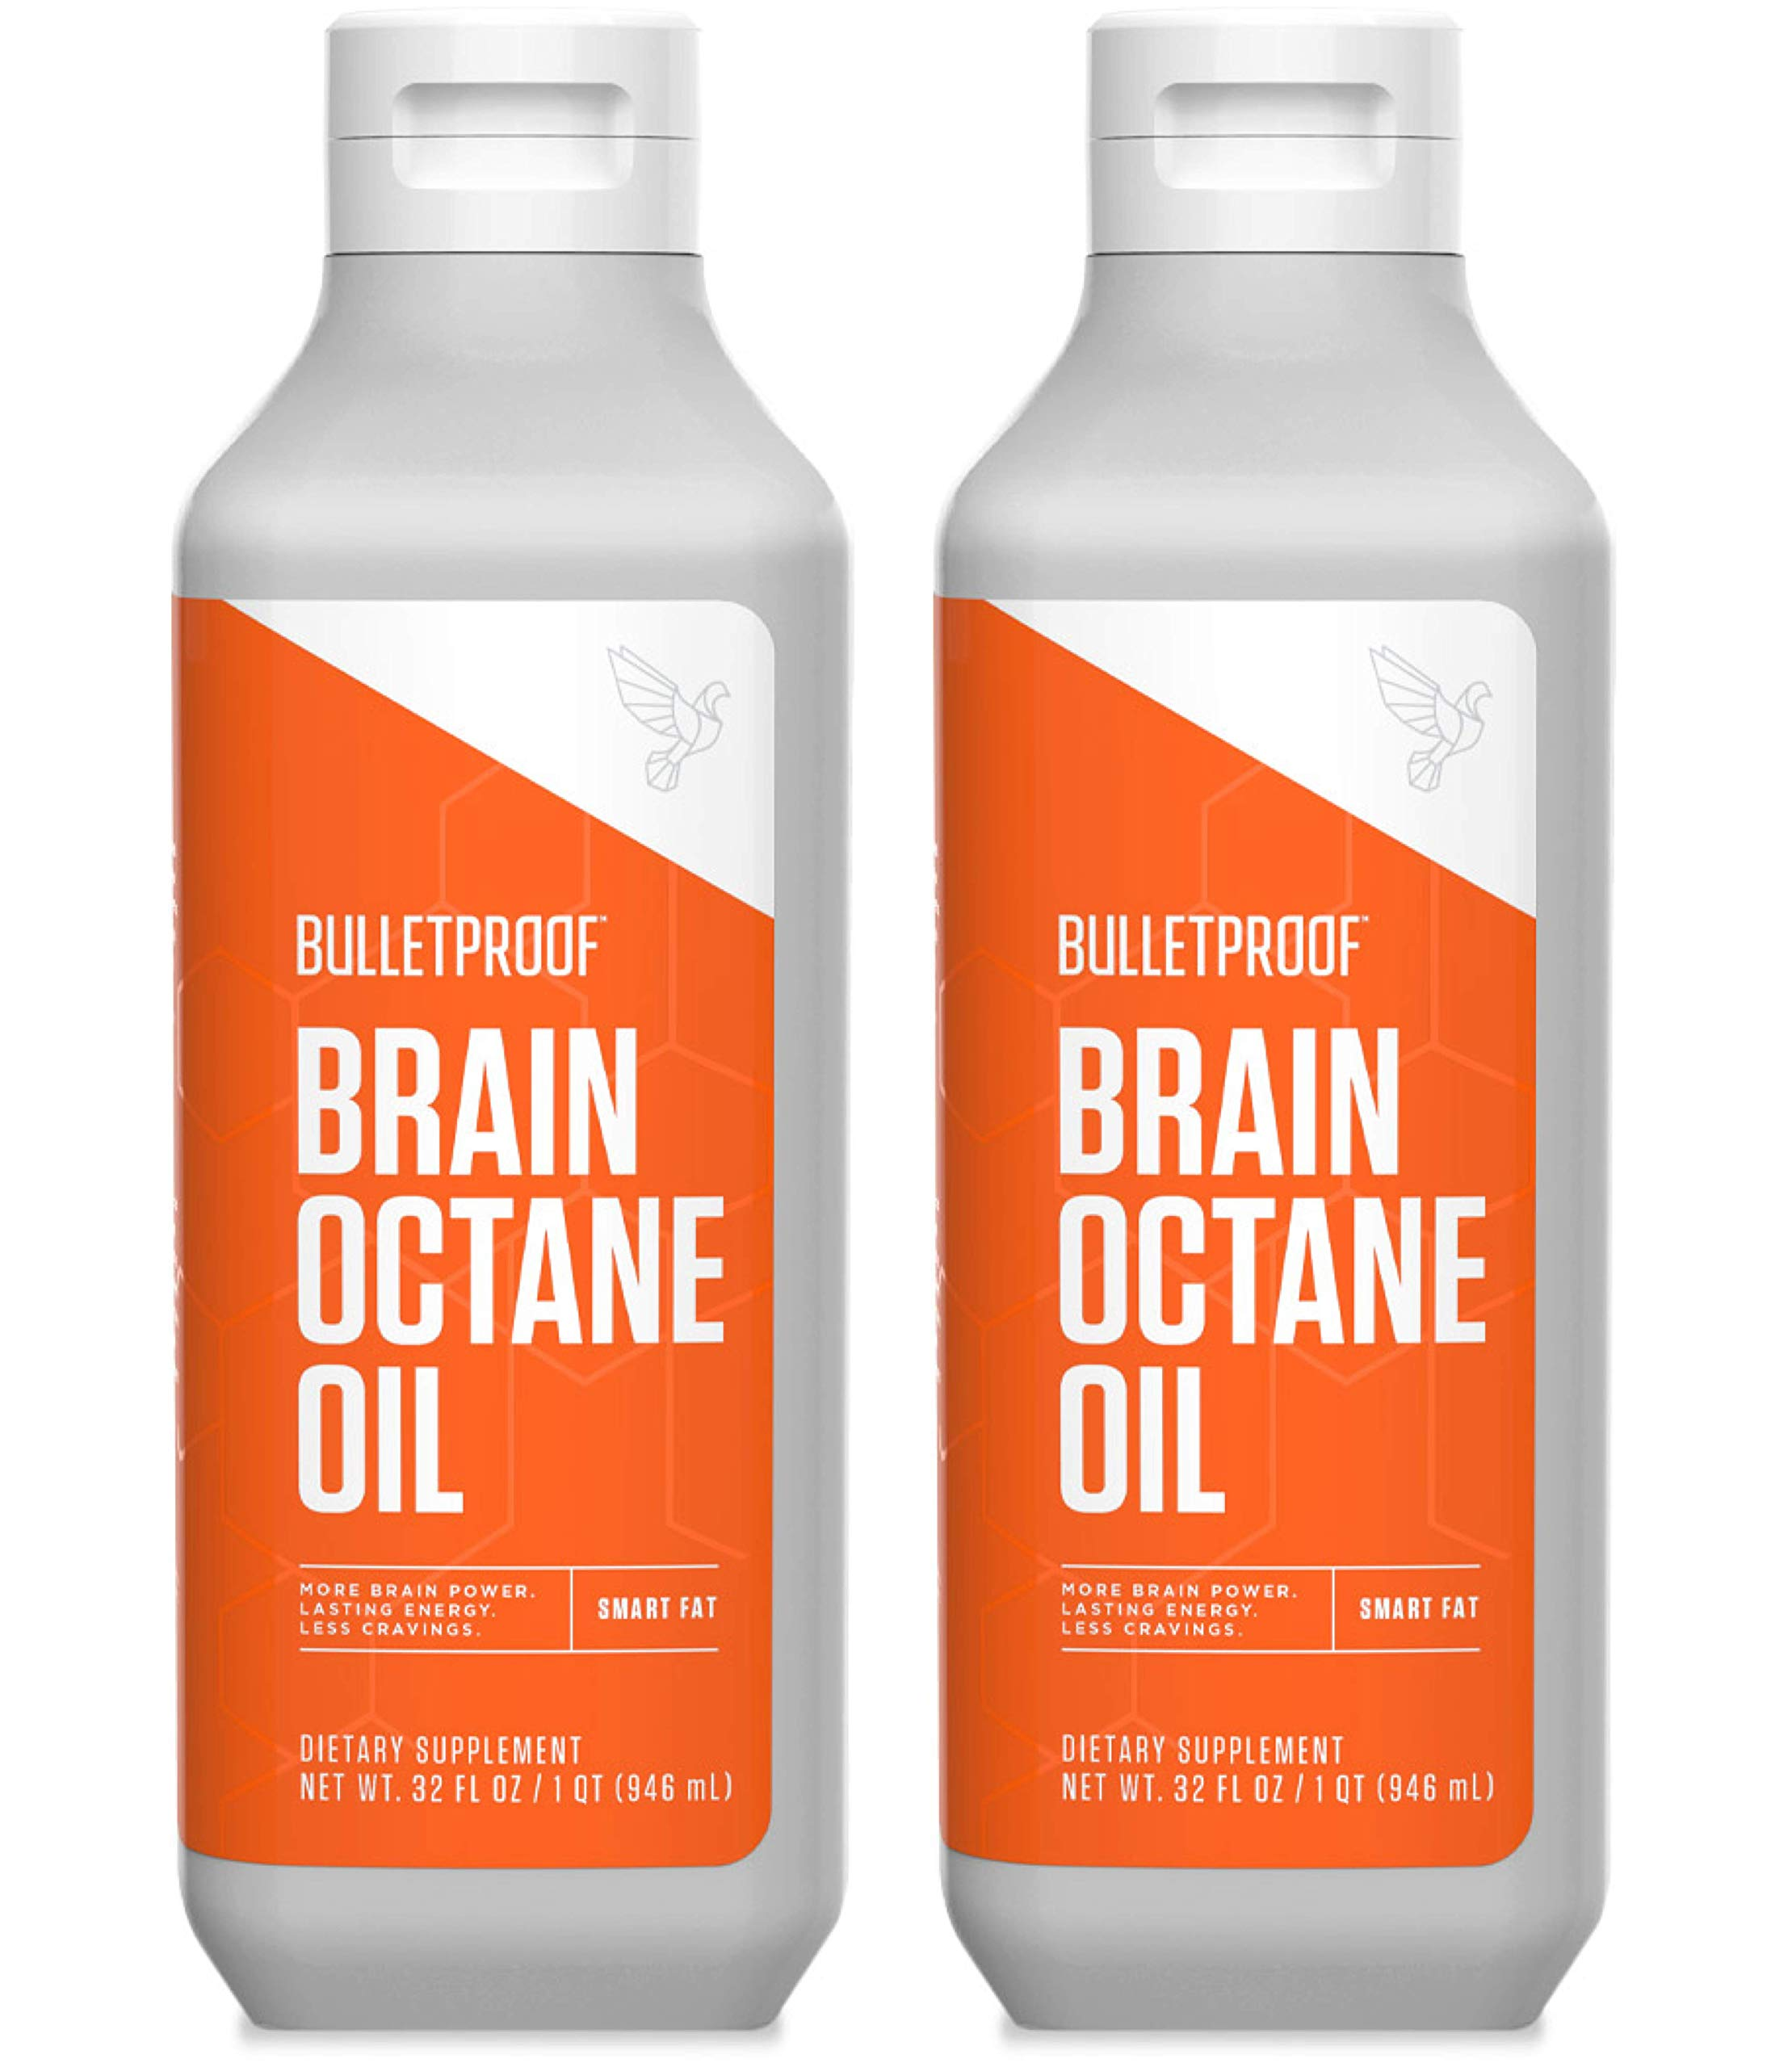 Bulletproof Brain Octane MCT Oil, Perfect for Keto and Paleo Diet, 100% Non-GMO Premium C8 Oil, Ketogenic Friendly, Responsibly Sourced from Coconuts Only, Made in the USA (2pack of 32oz) by Bulletproof